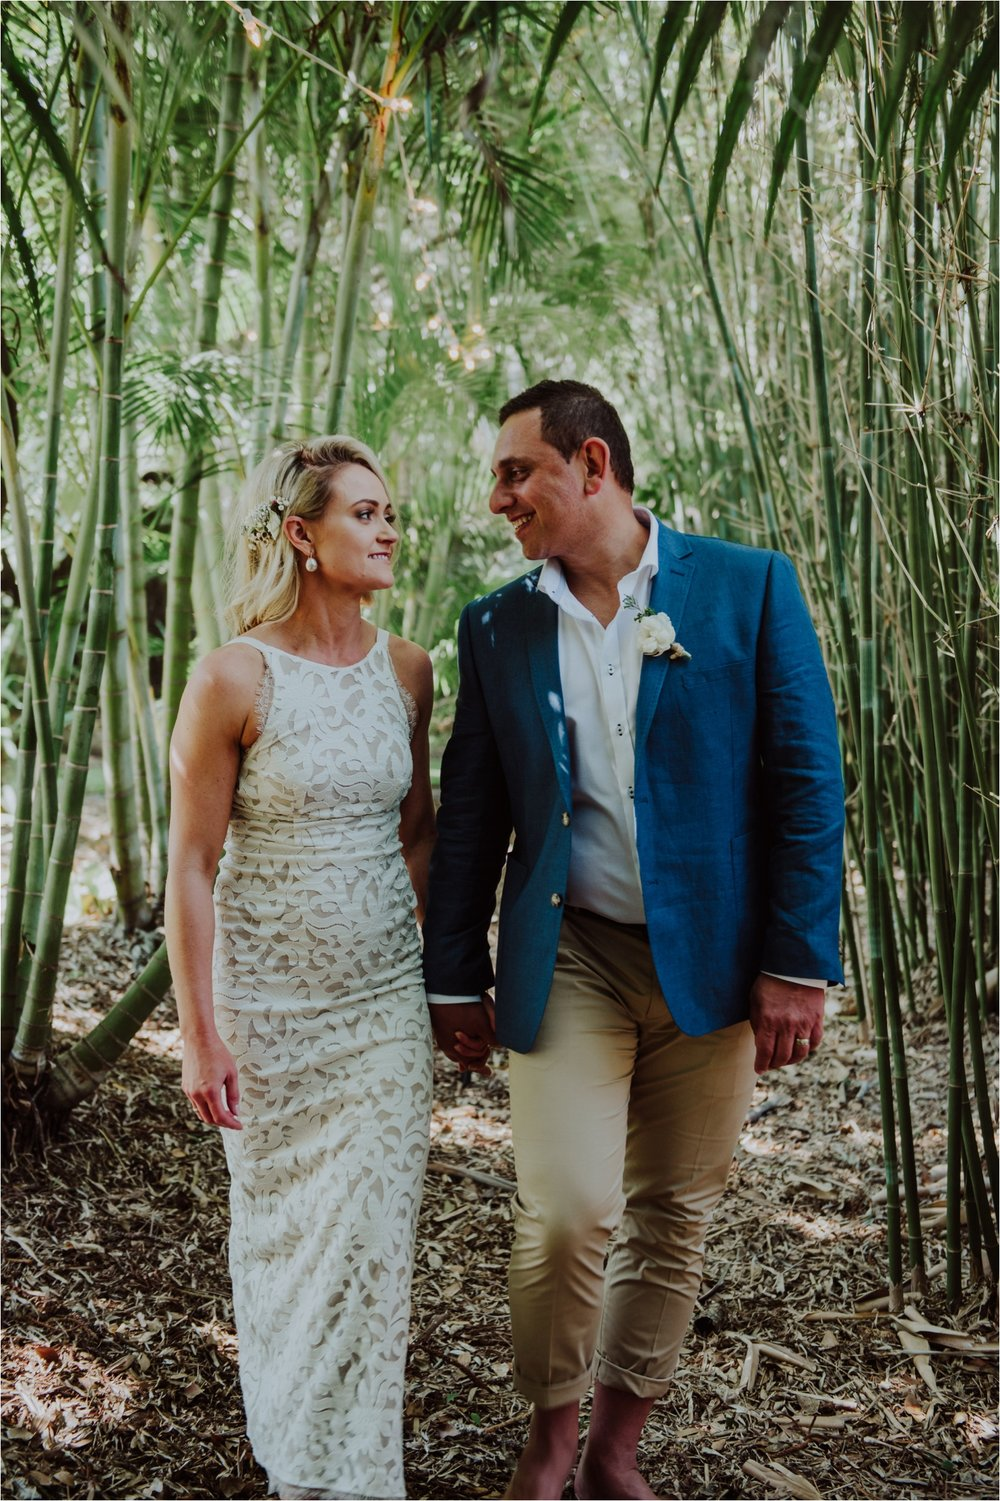 Candid bridal session by byron bay wedding photographer